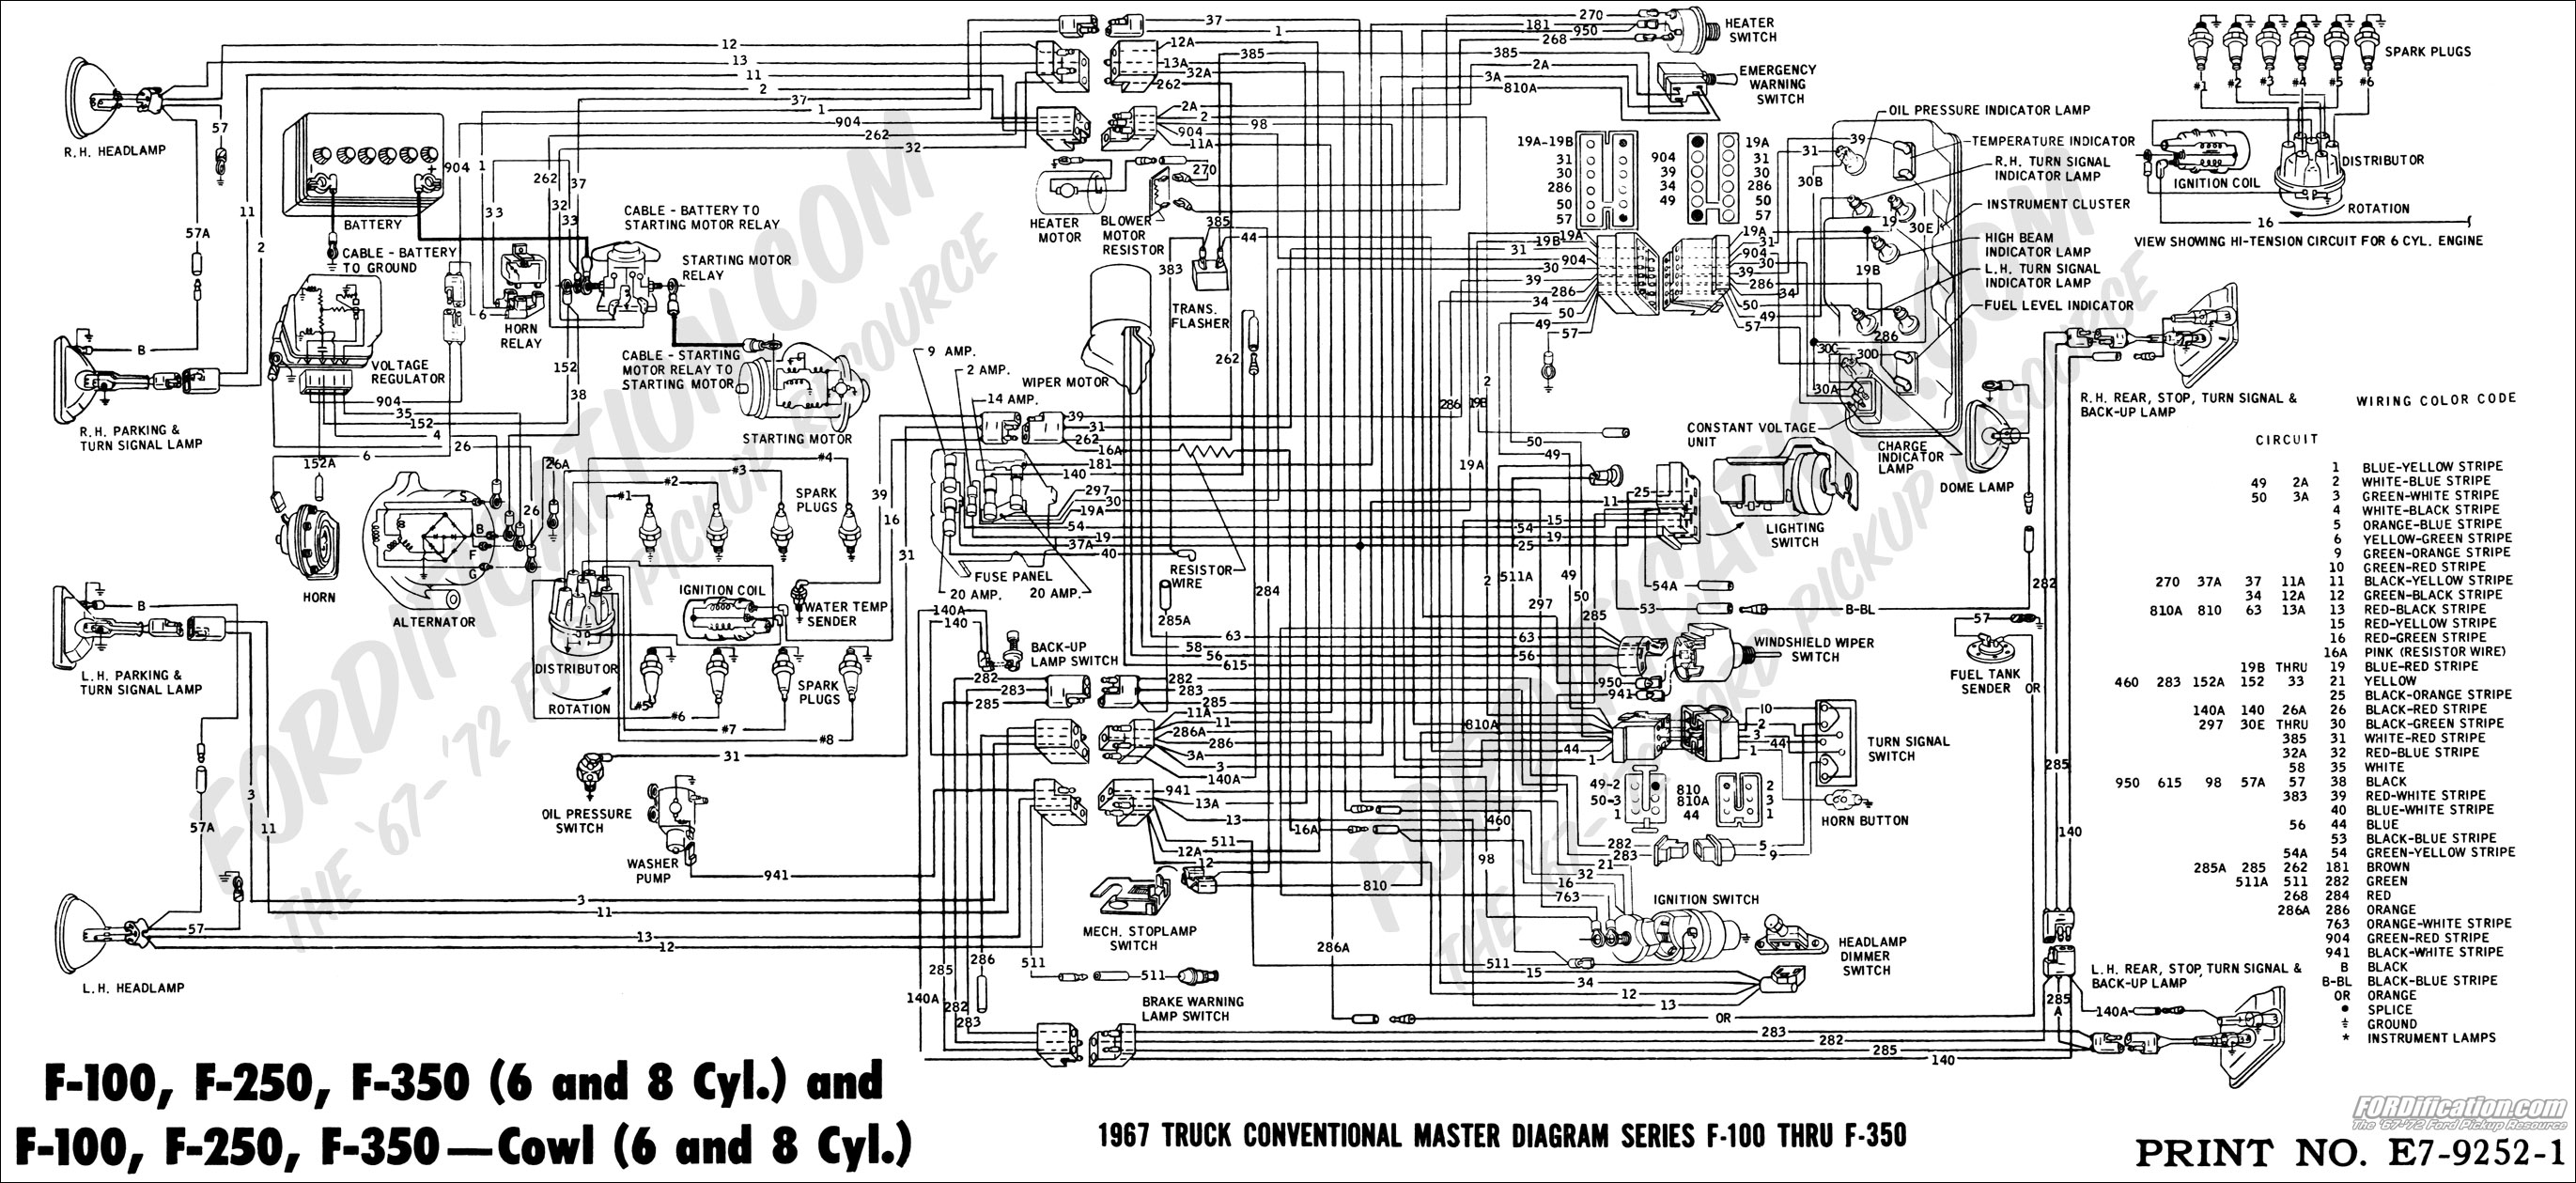 1990 F450 Wire Diagram Great Design Of Wiring 29 Ford F150 Images 450 Truck